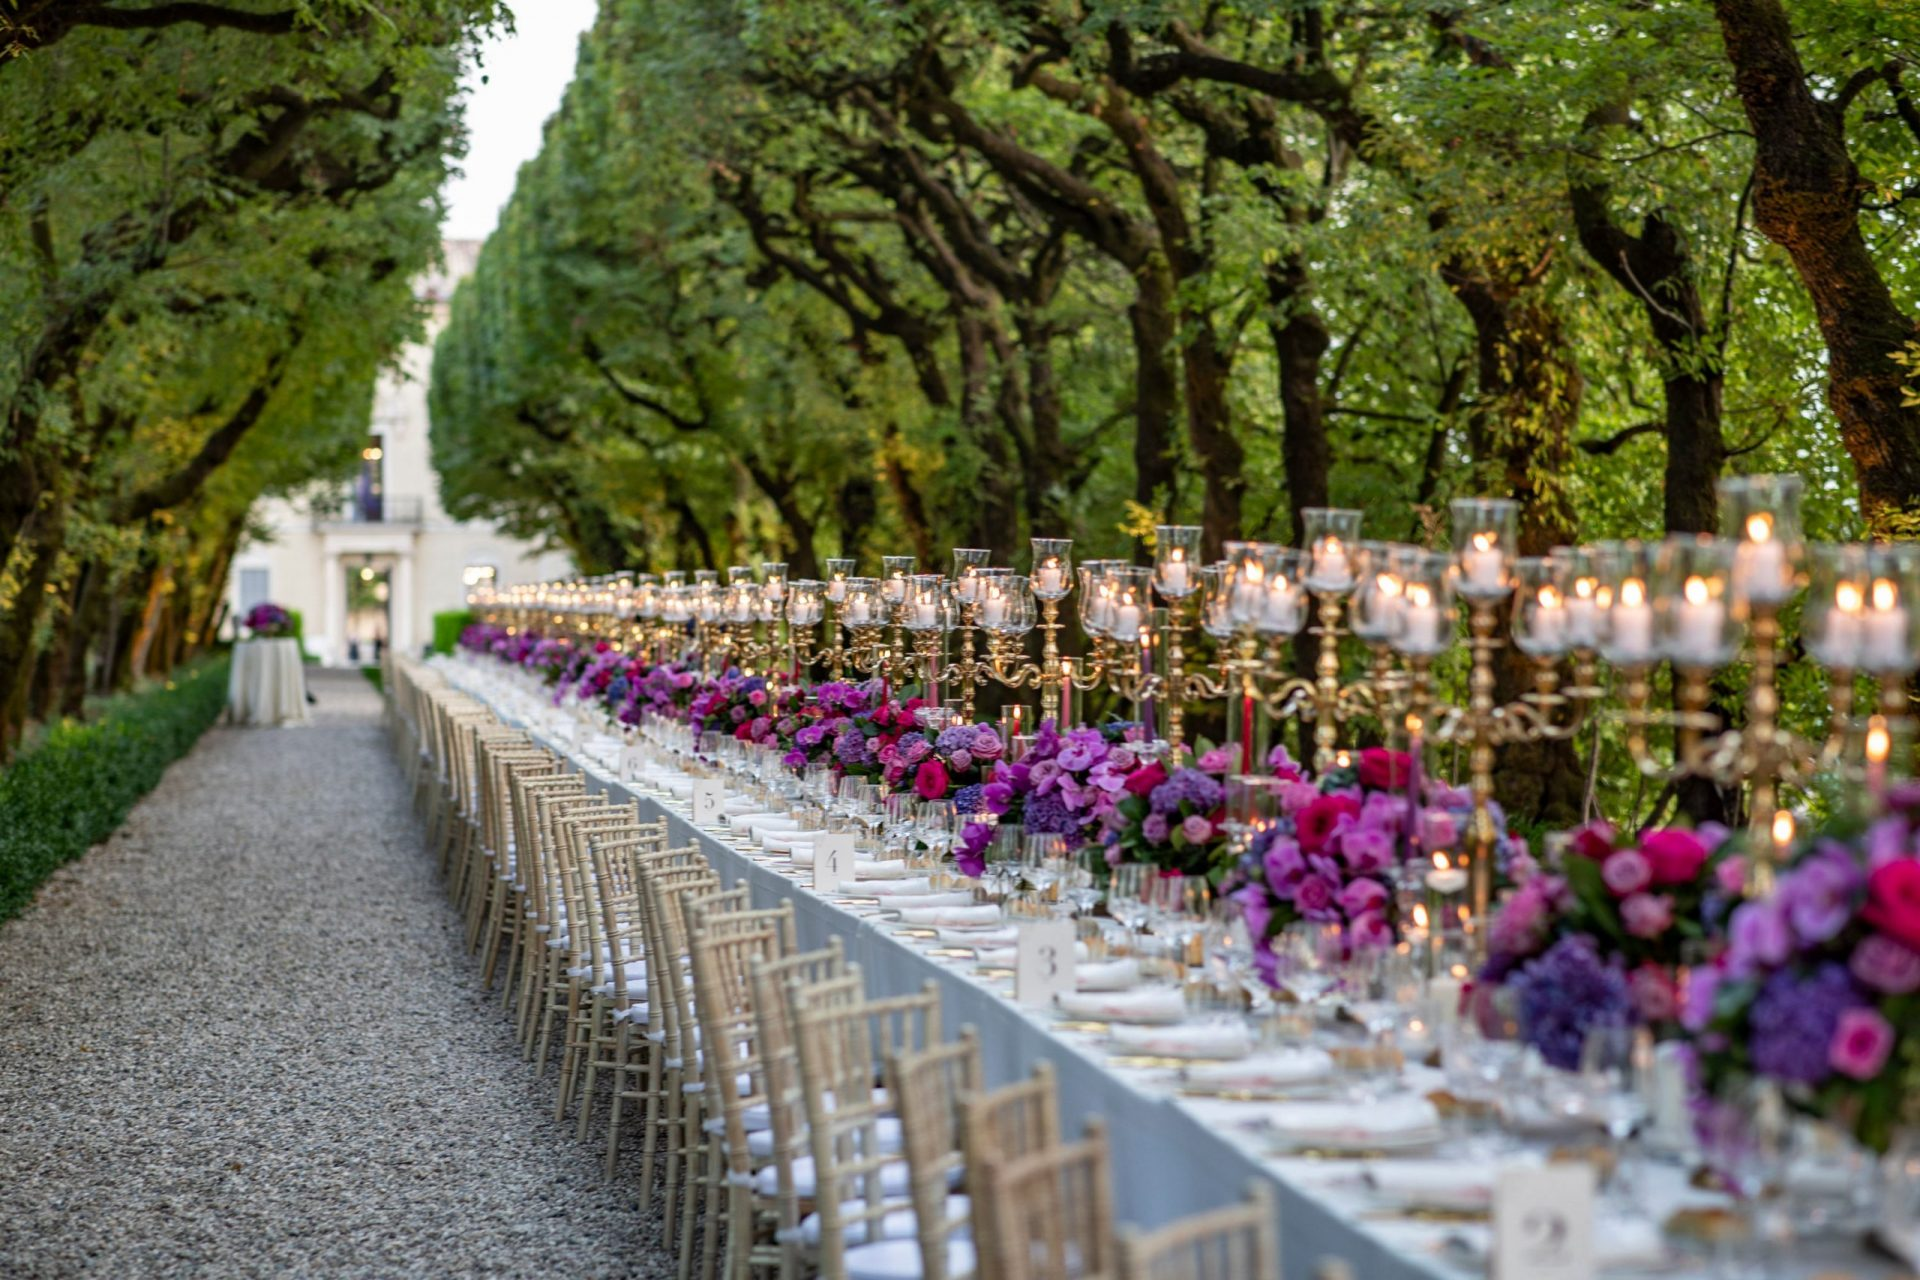 Ranya and Tarek, long dinner table with elegant flowers centrepieces